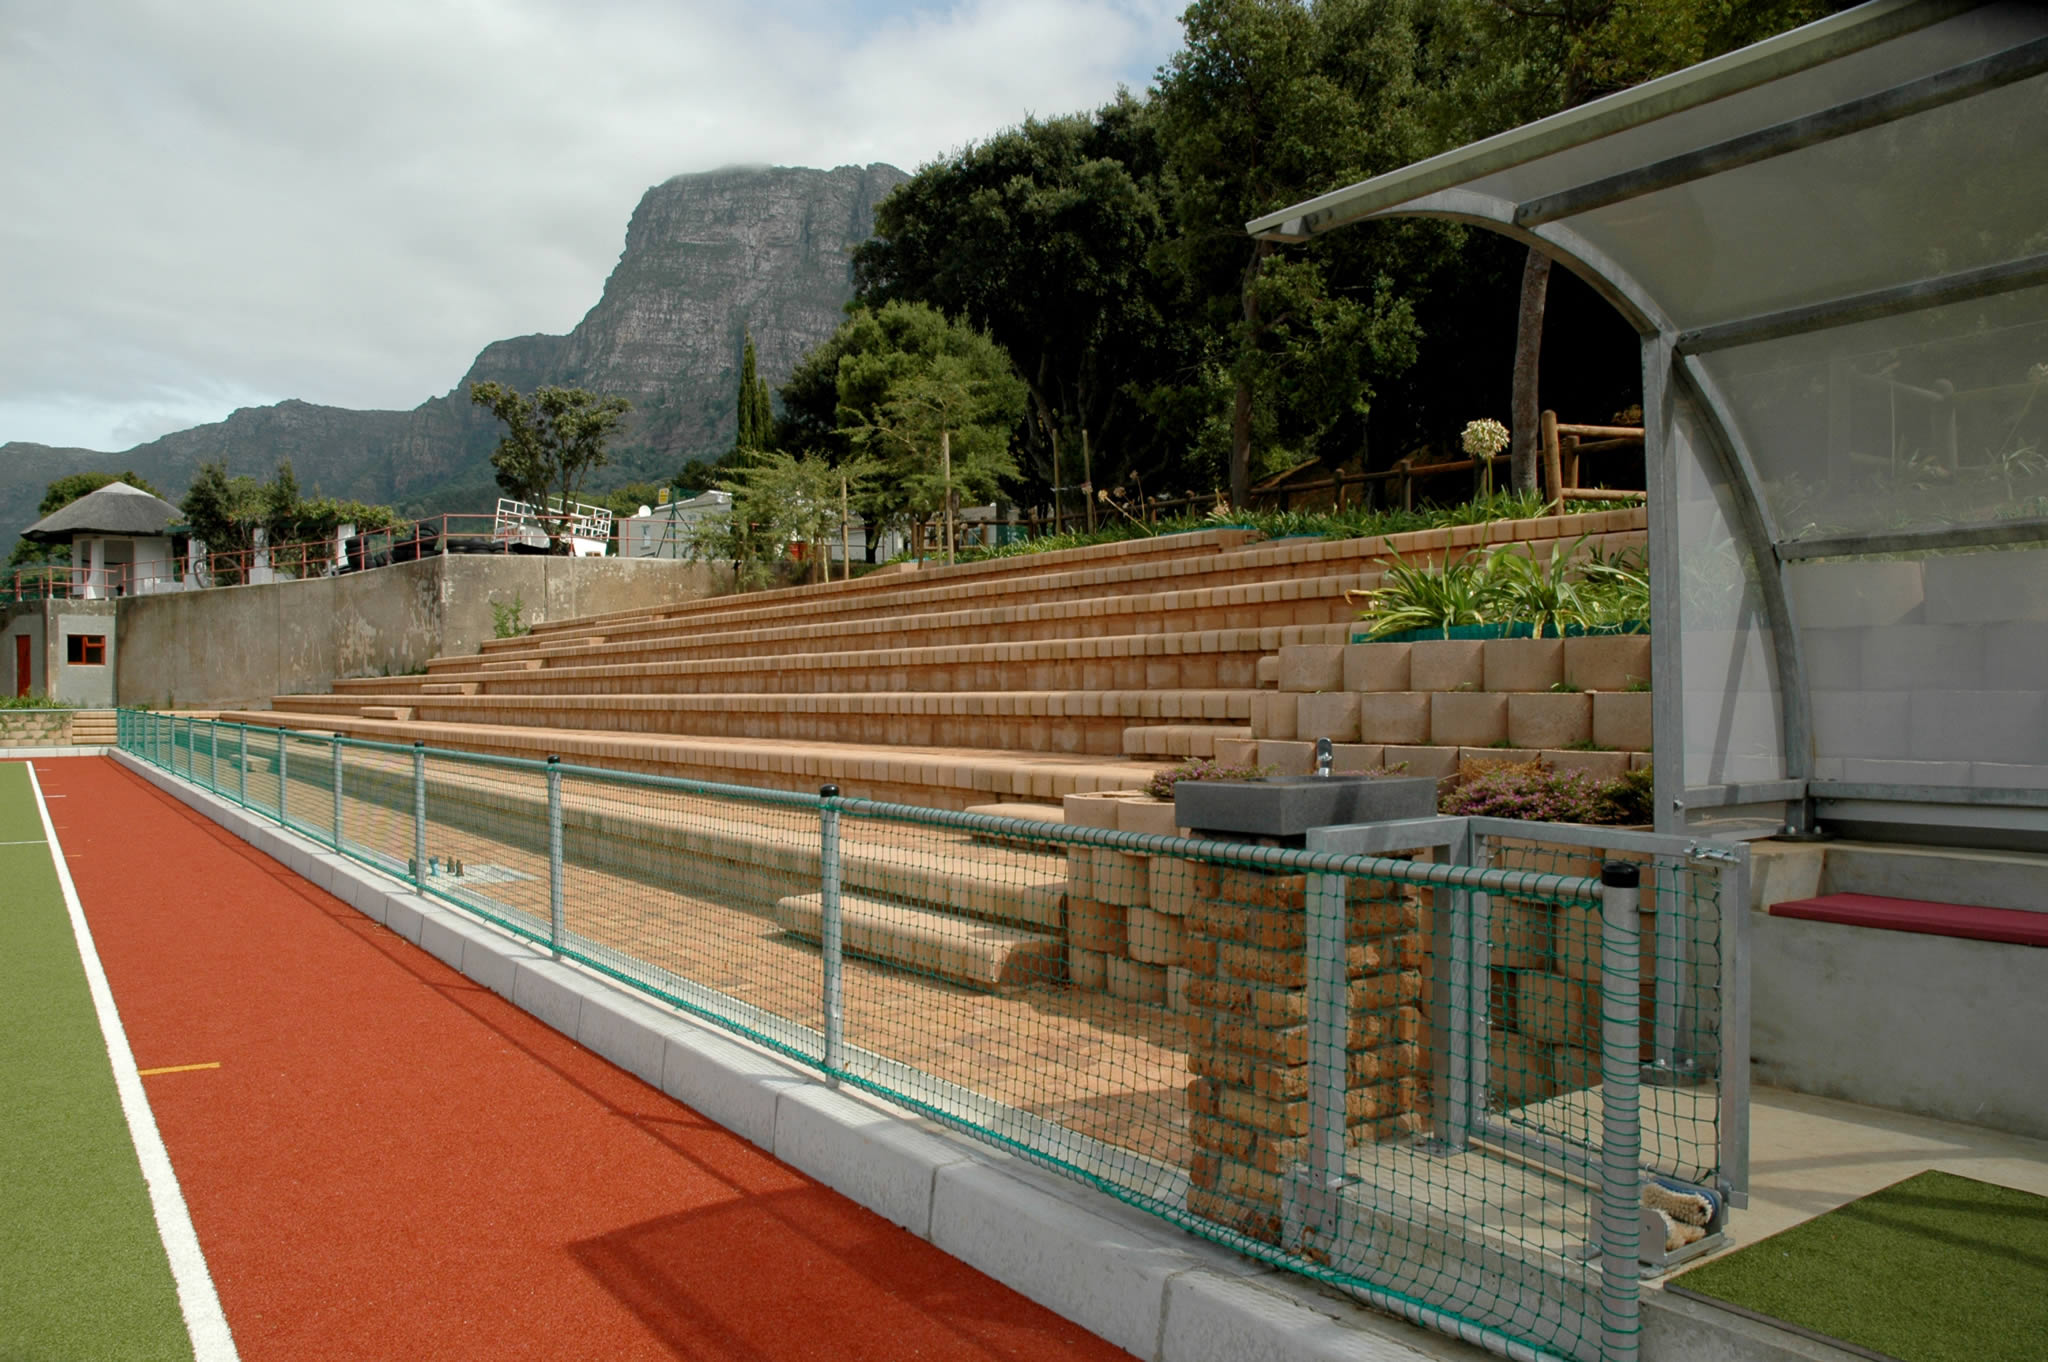 Step block retaining wall system creates seating for school